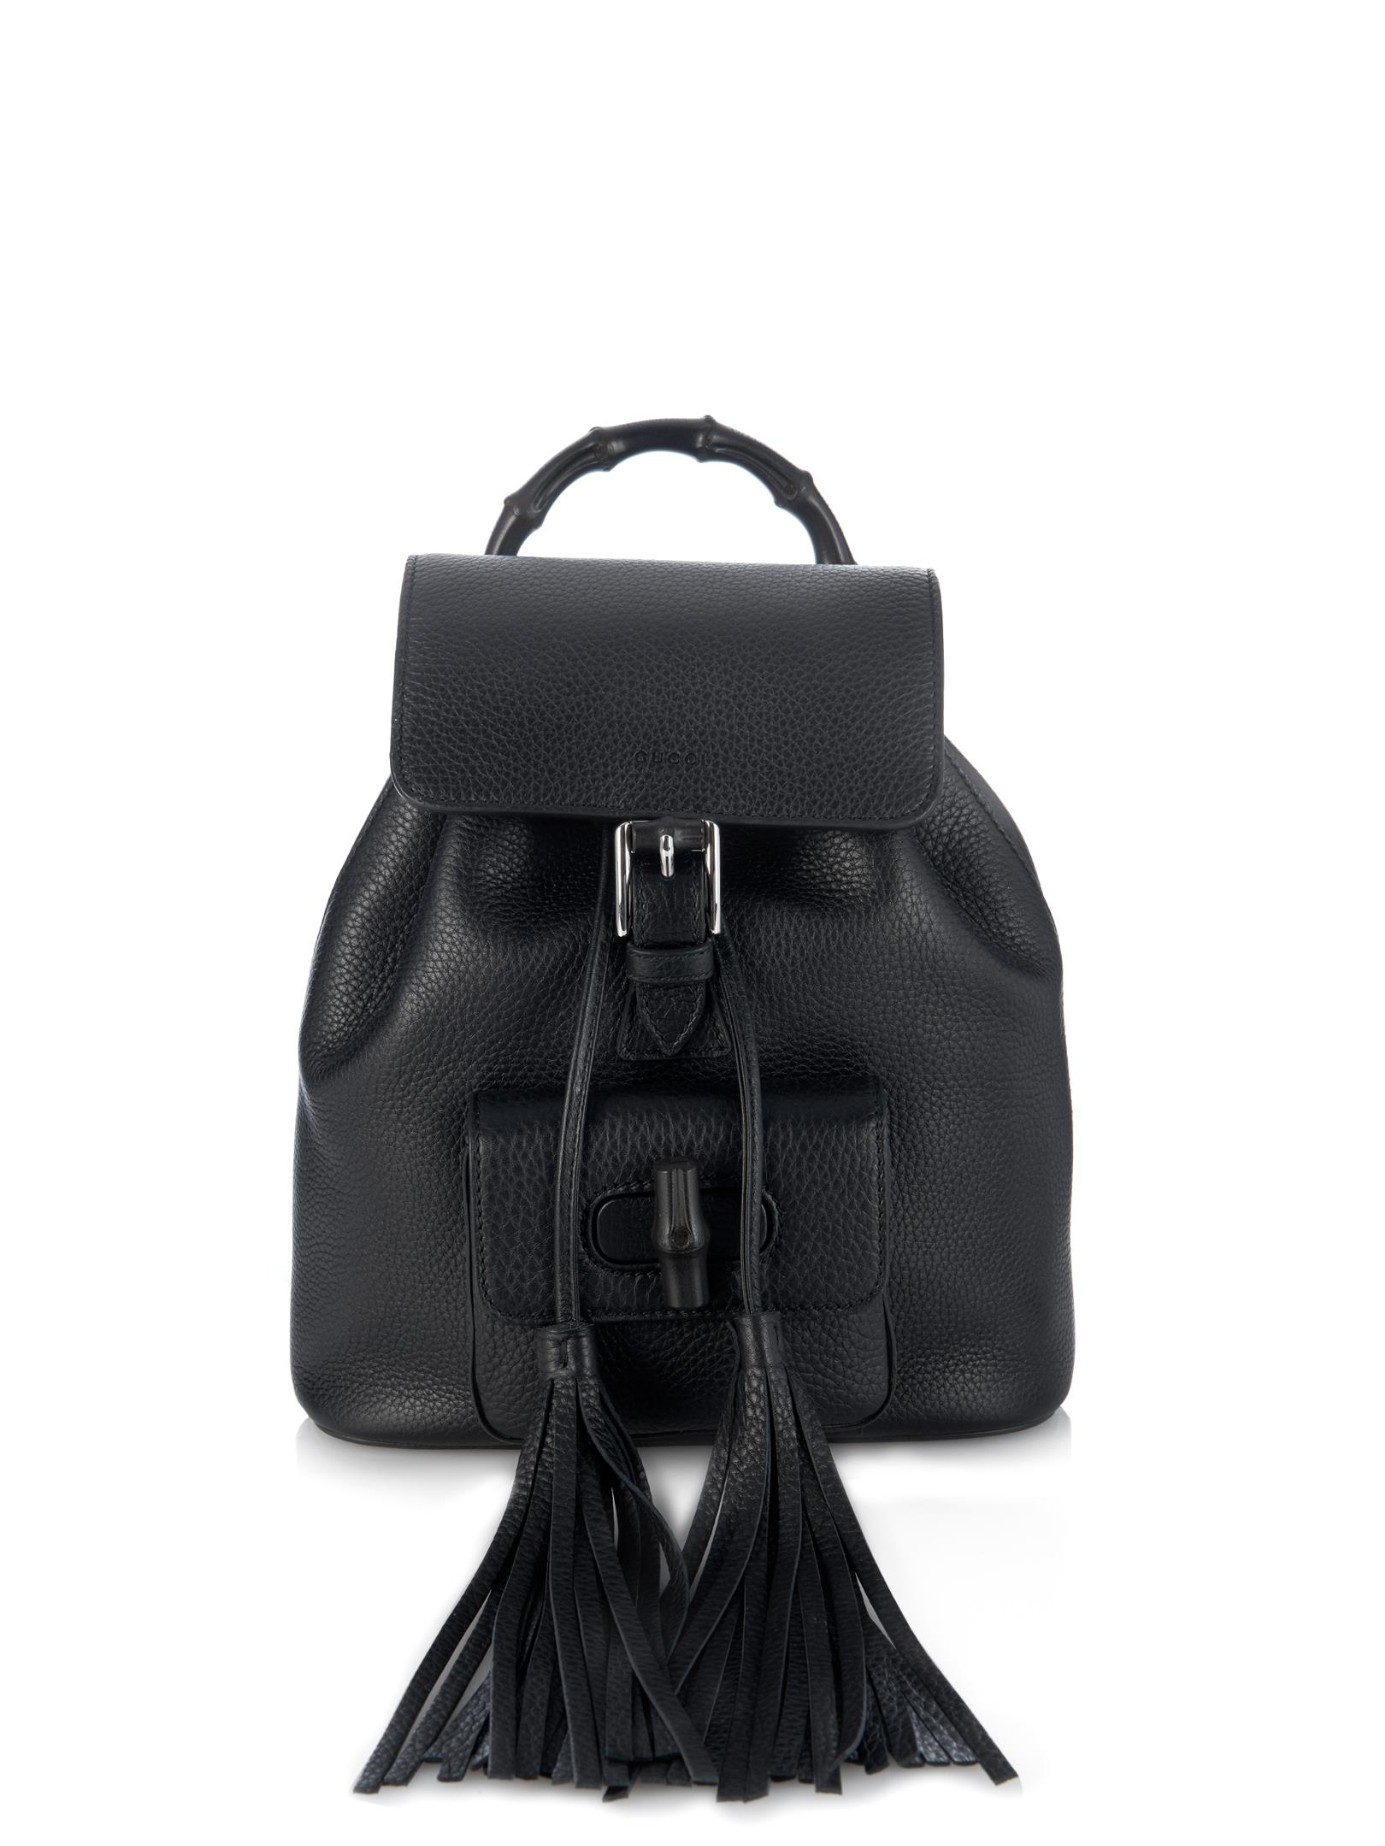 168a24aee467 Gucci Bamboo Mini Leather Backpack in Black - Lyst